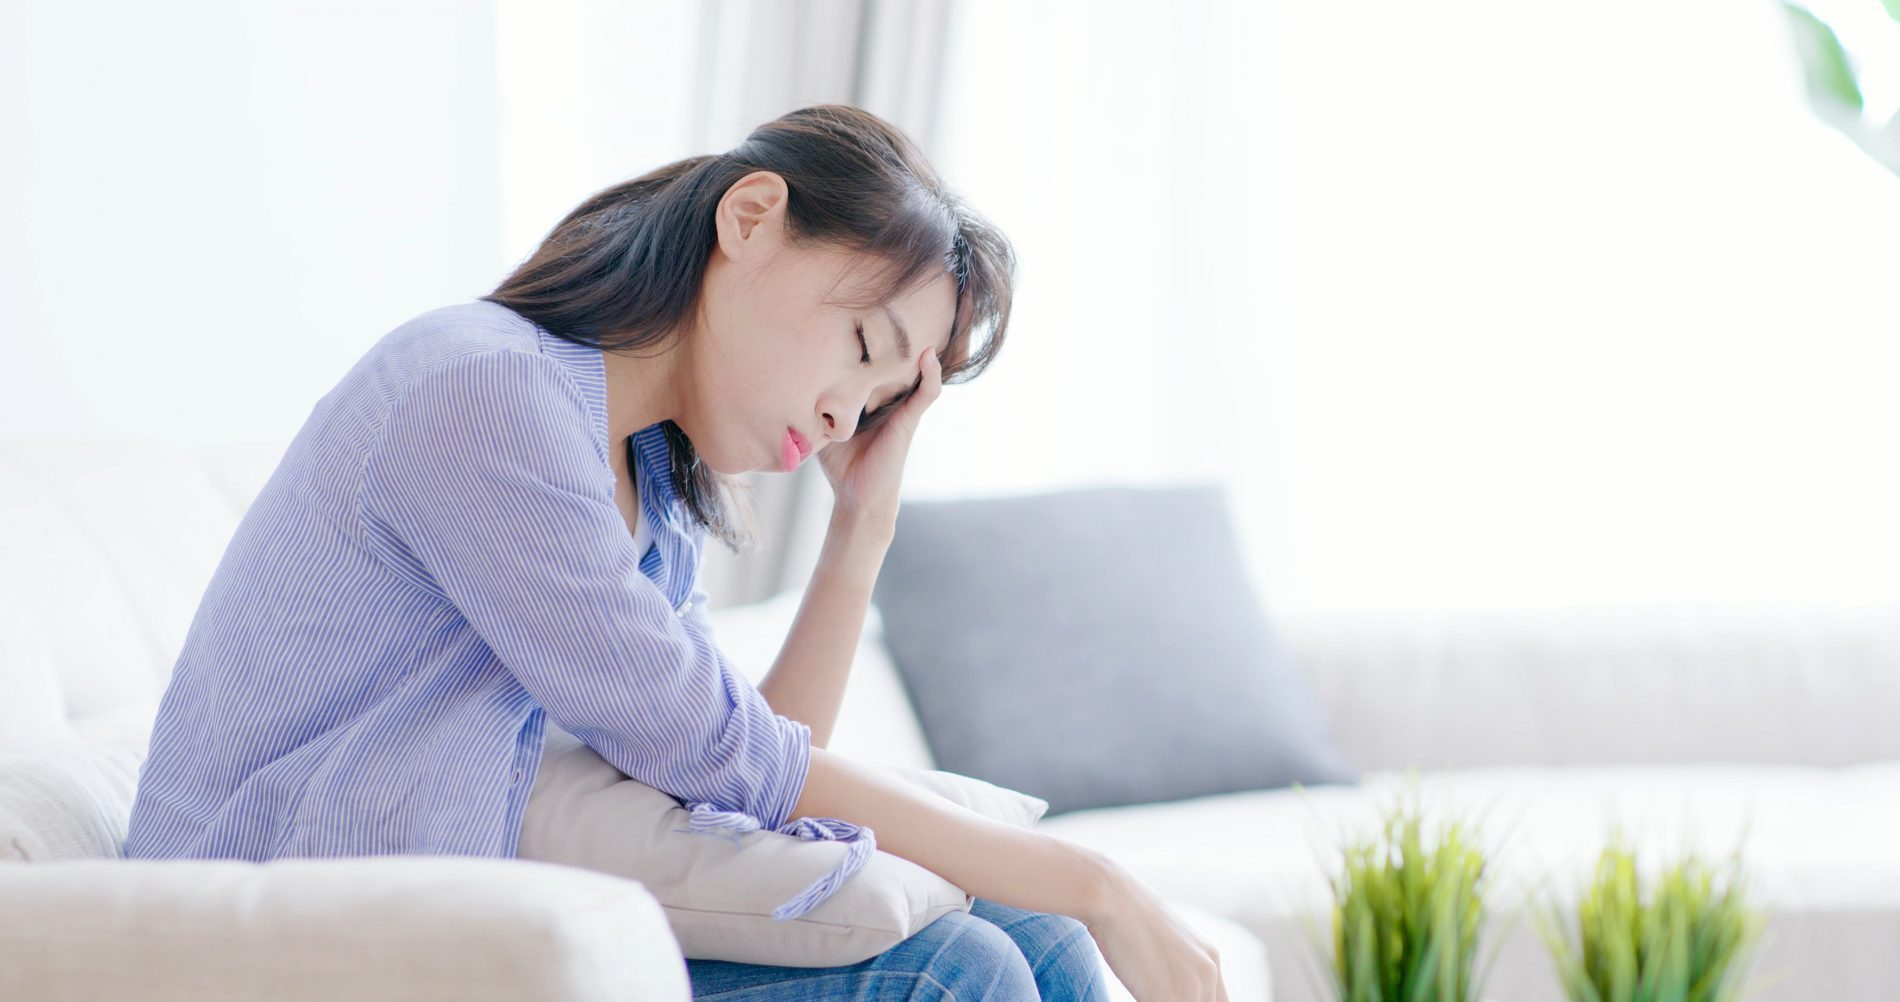 exhausted woman sitting on a couch possibly depressed or suffering from anxiety